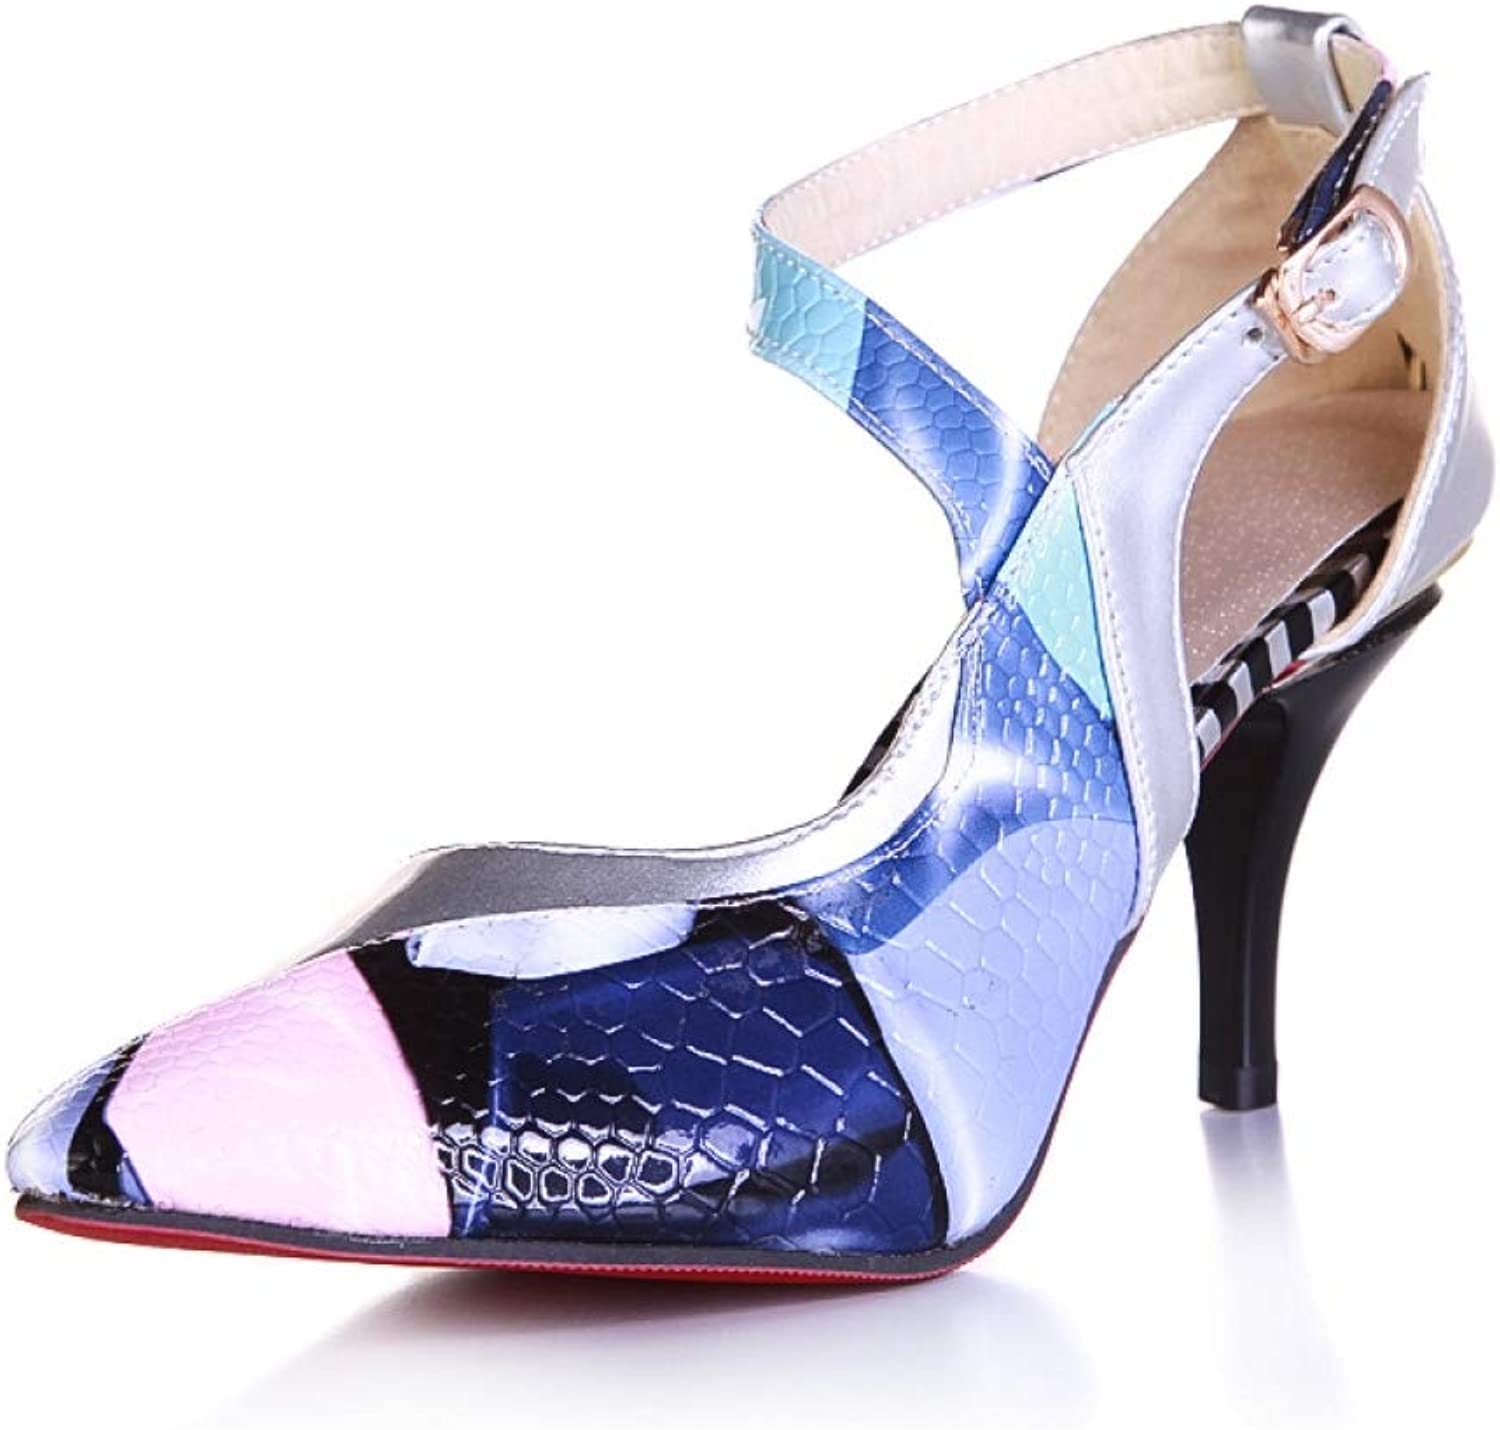 Women Thin High Heels Mixed colors Sandals Sexy Ankle Buckle Strap Ladies Fashion Dress shoes